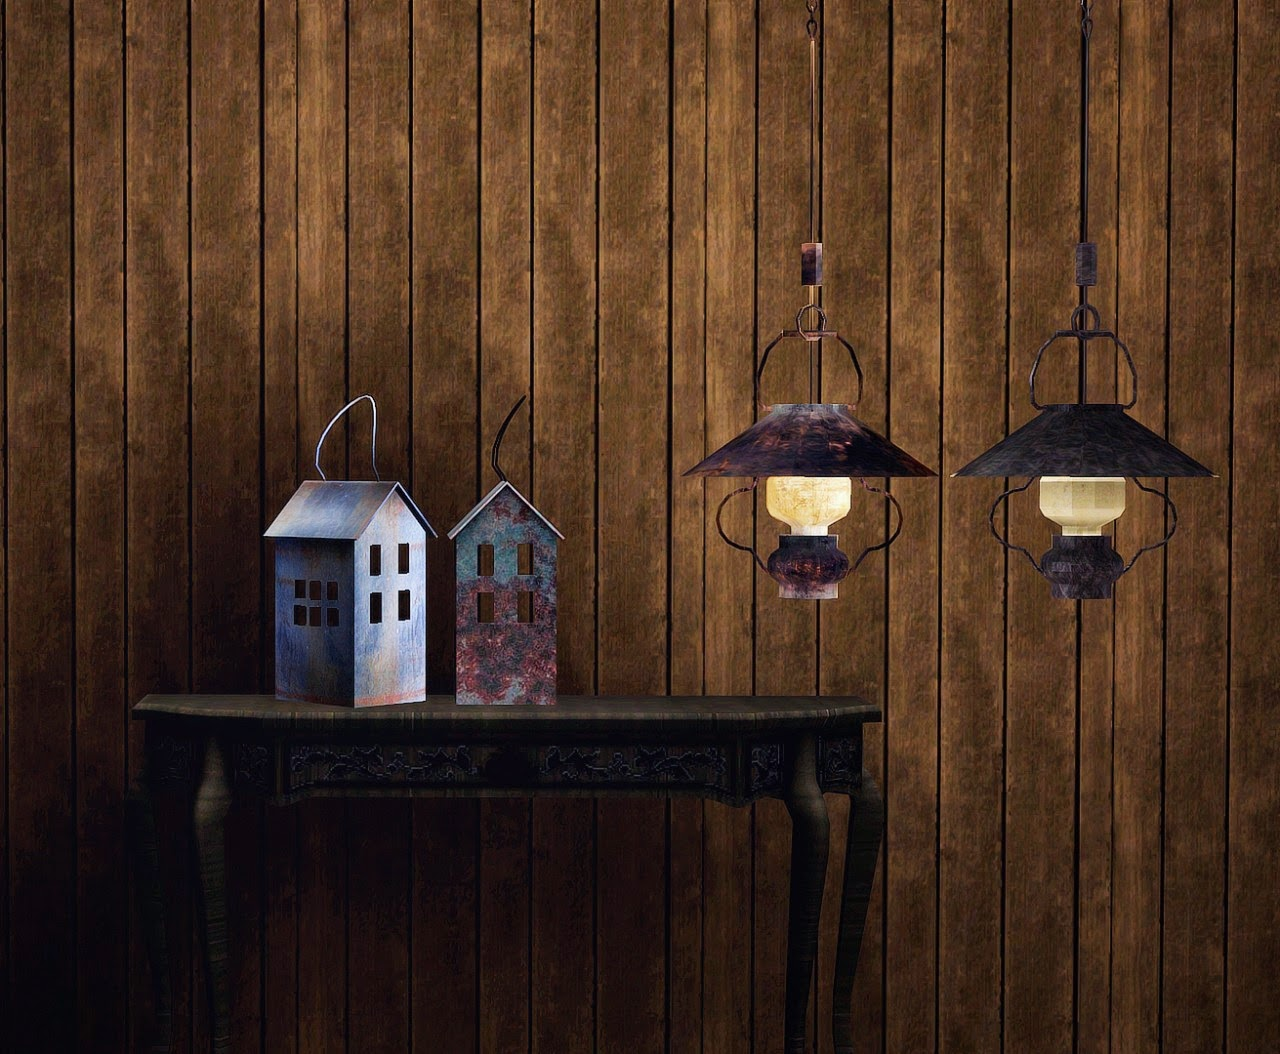 Ceiling Lamps and Decor by BlueHopperSimming